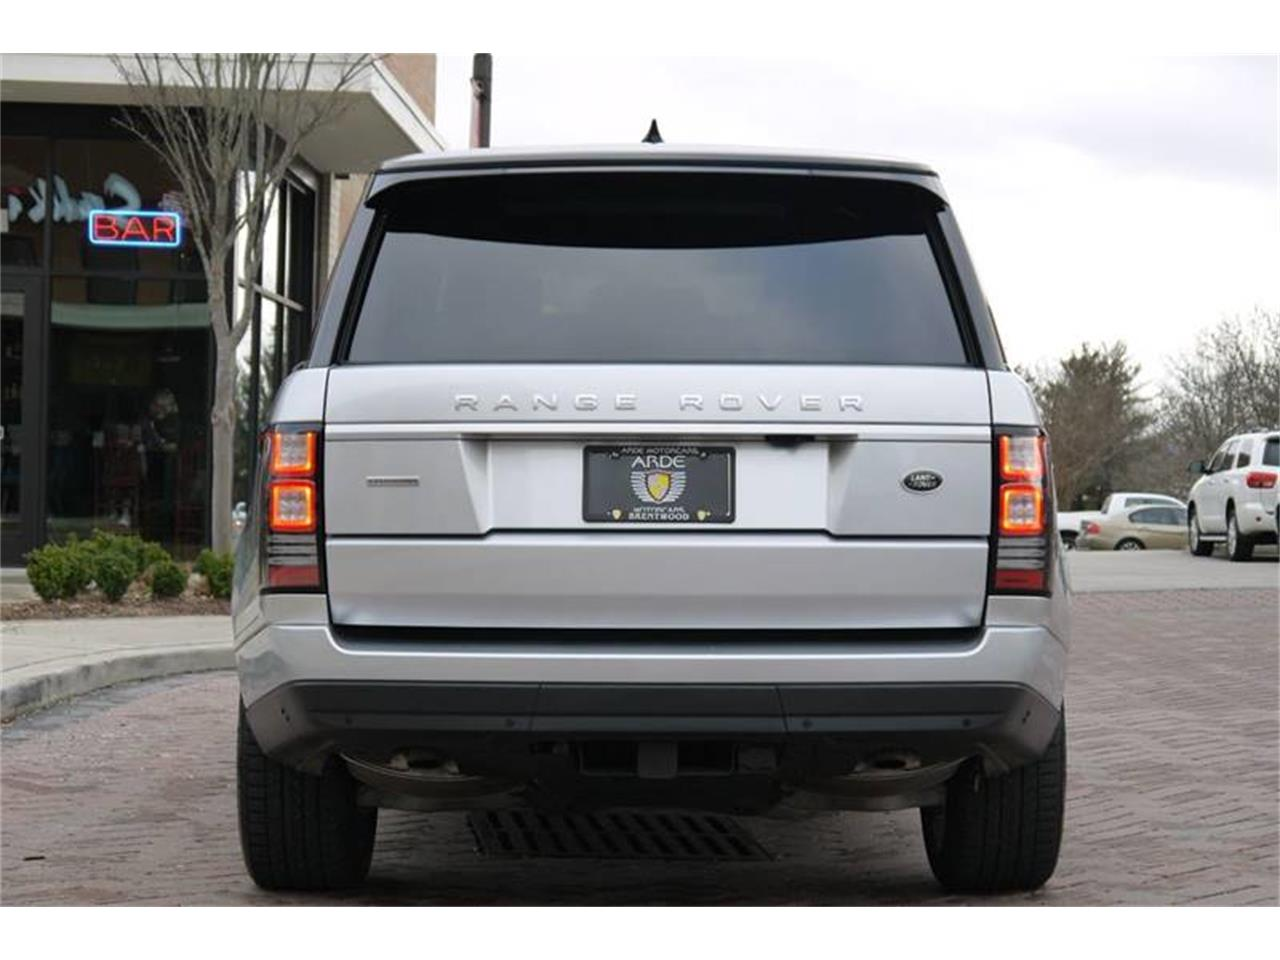 Large Picture of '17 Land Rover Range Rover located in Brentwood Tennessee Auction Vehicle - MODC